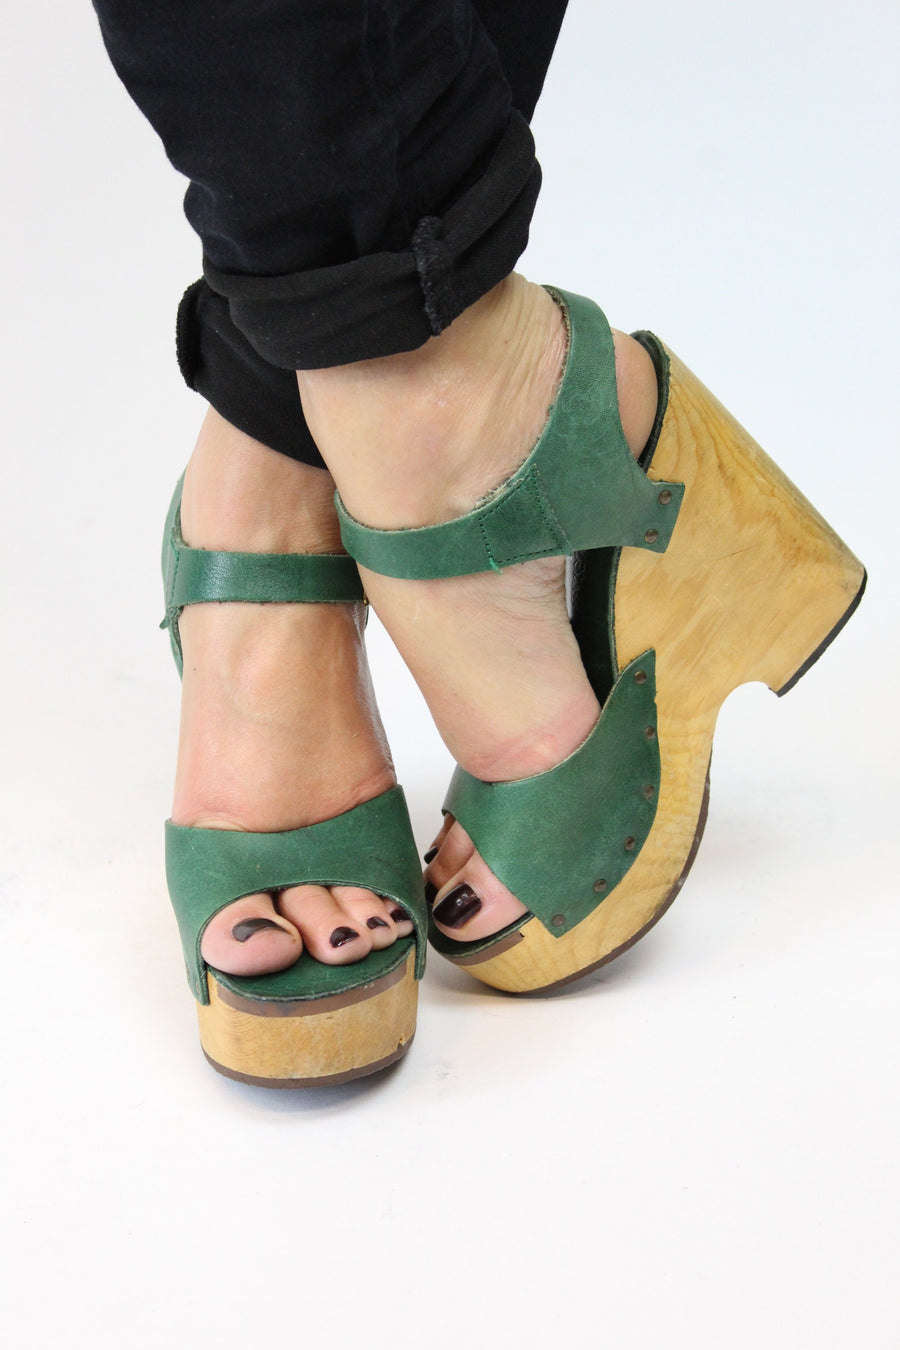 1970s Cherokee wood wedges | vintage peep toe platform shoes | size 5 us